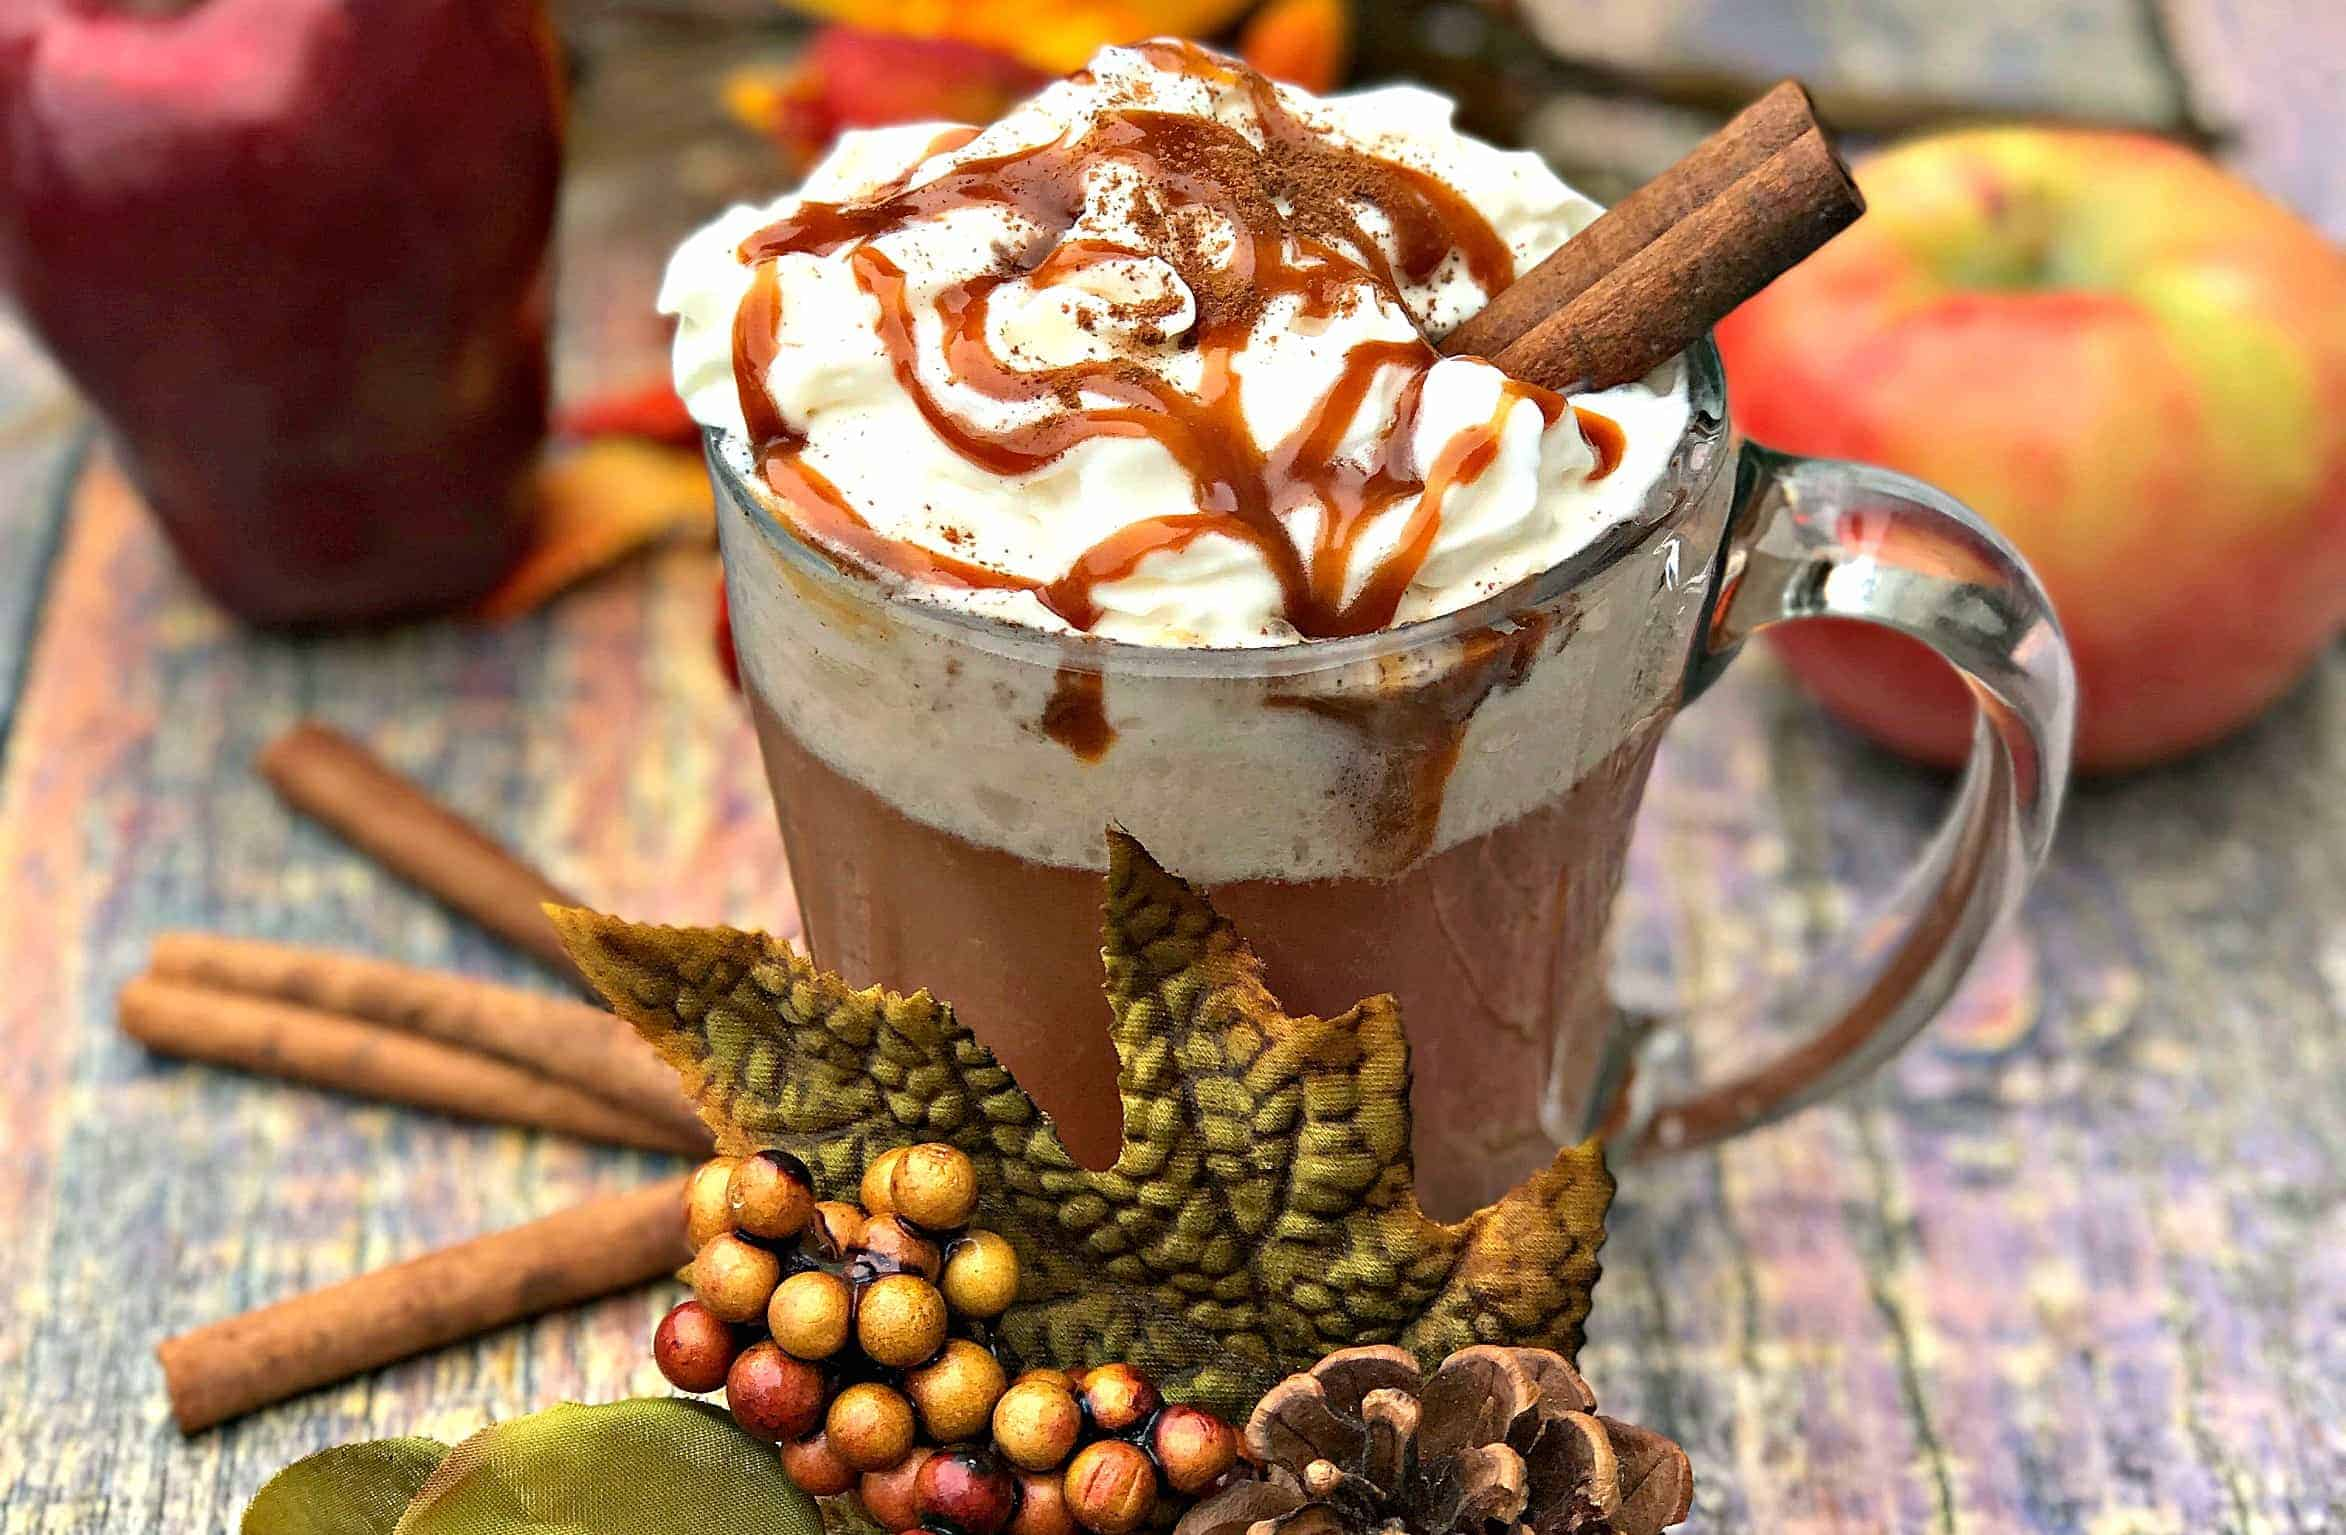 Skinny Copy-Cat Starbucks Caramel Apple Cider in a glass mug with fall decor surrounding the mug